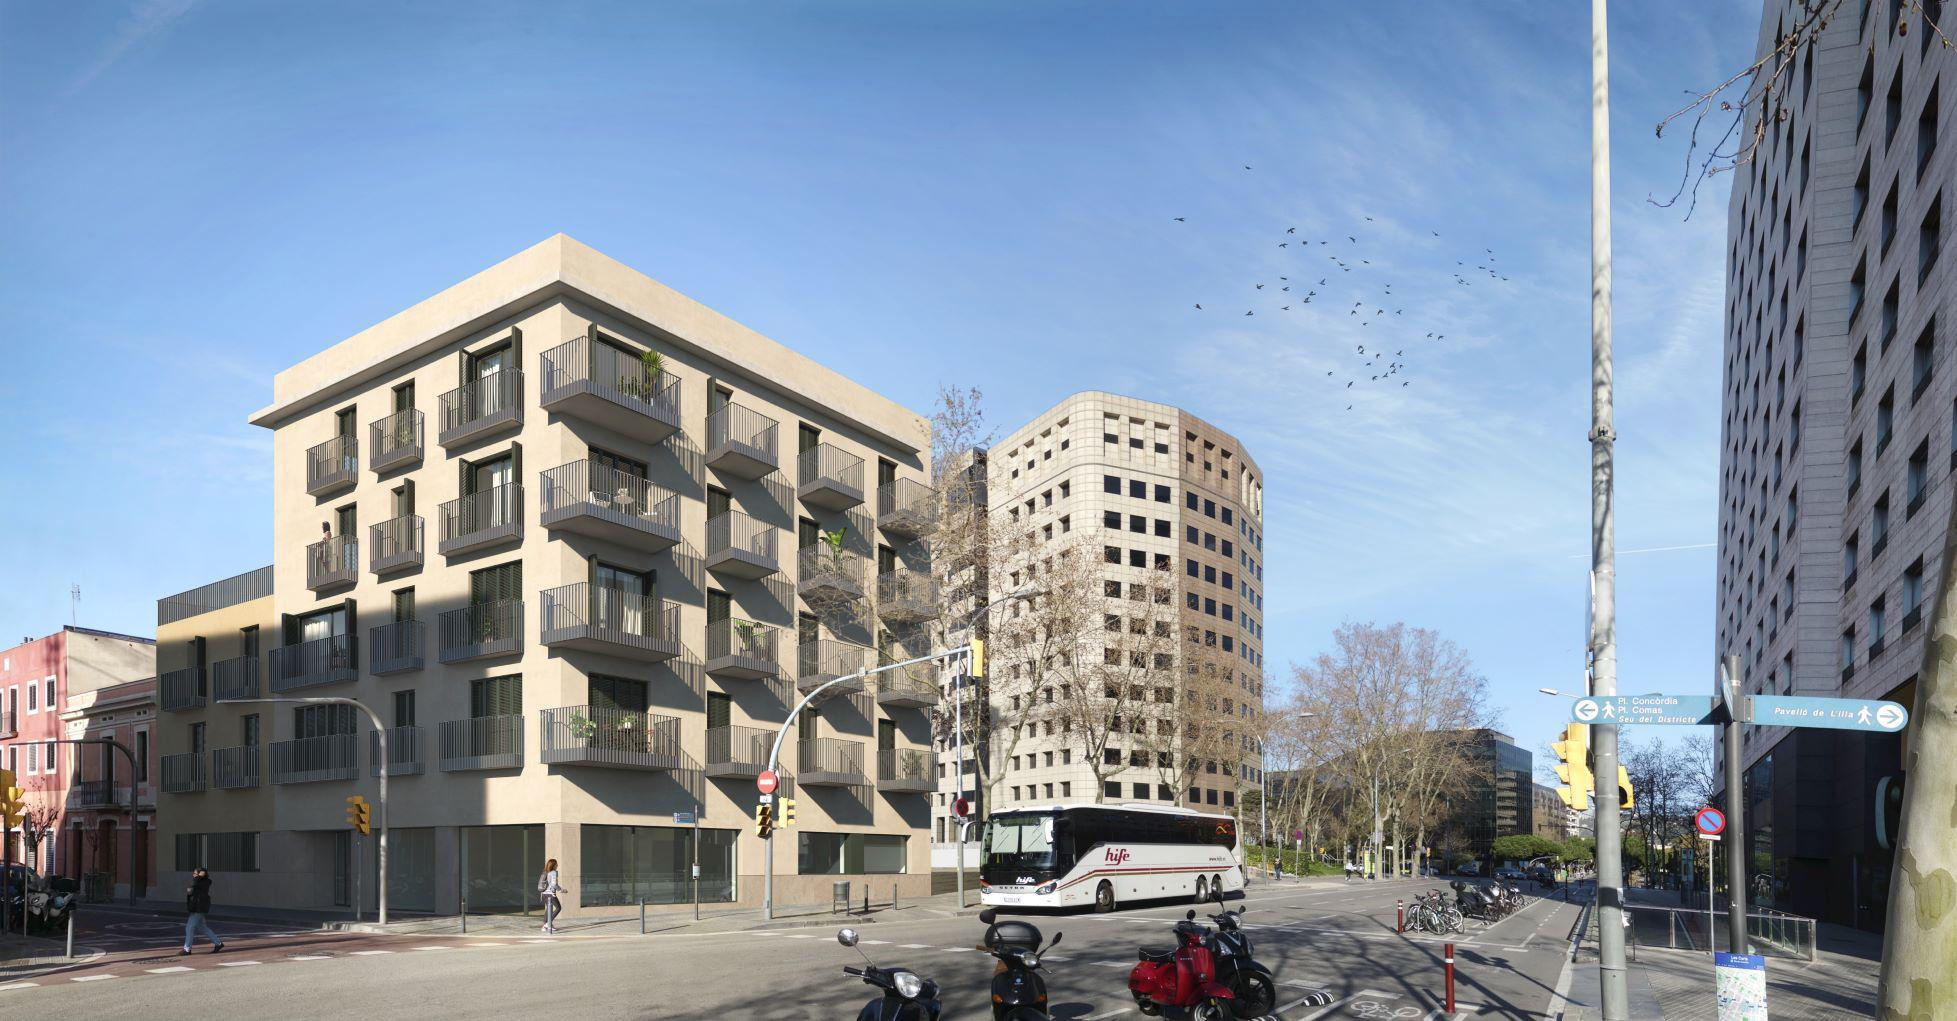 247289 Flat for sale in Les Corts, Les Corts 1